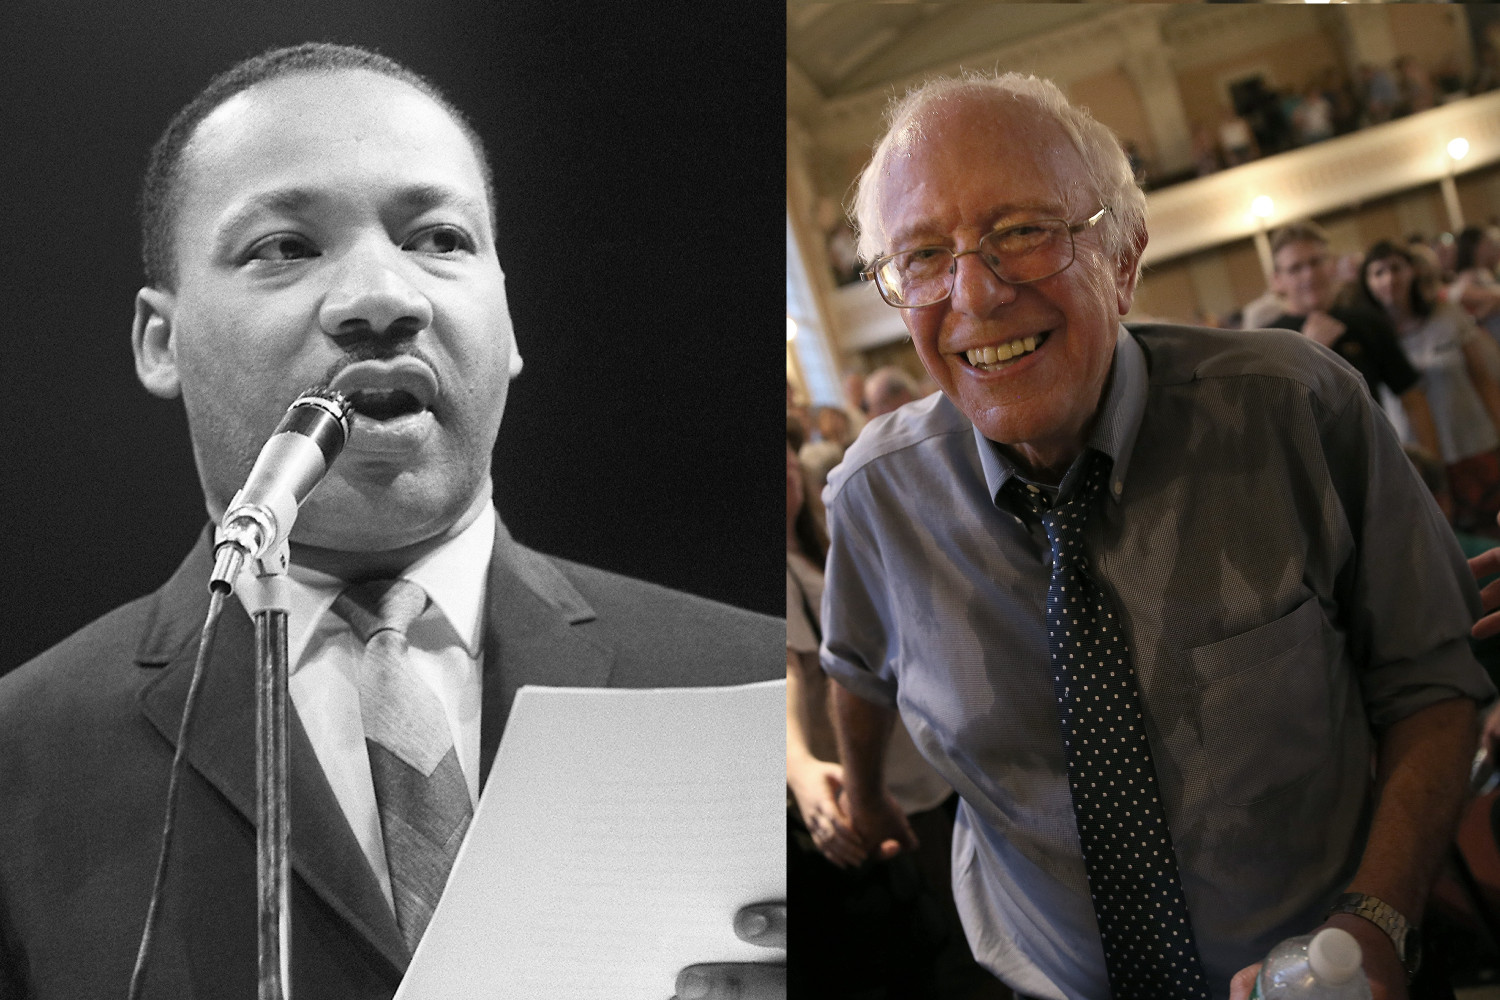 Bernie Sanders invoked Martin Luther King Jr in his assertion that he would repeal anti-LGBT laws (Images: Getty - under licence)